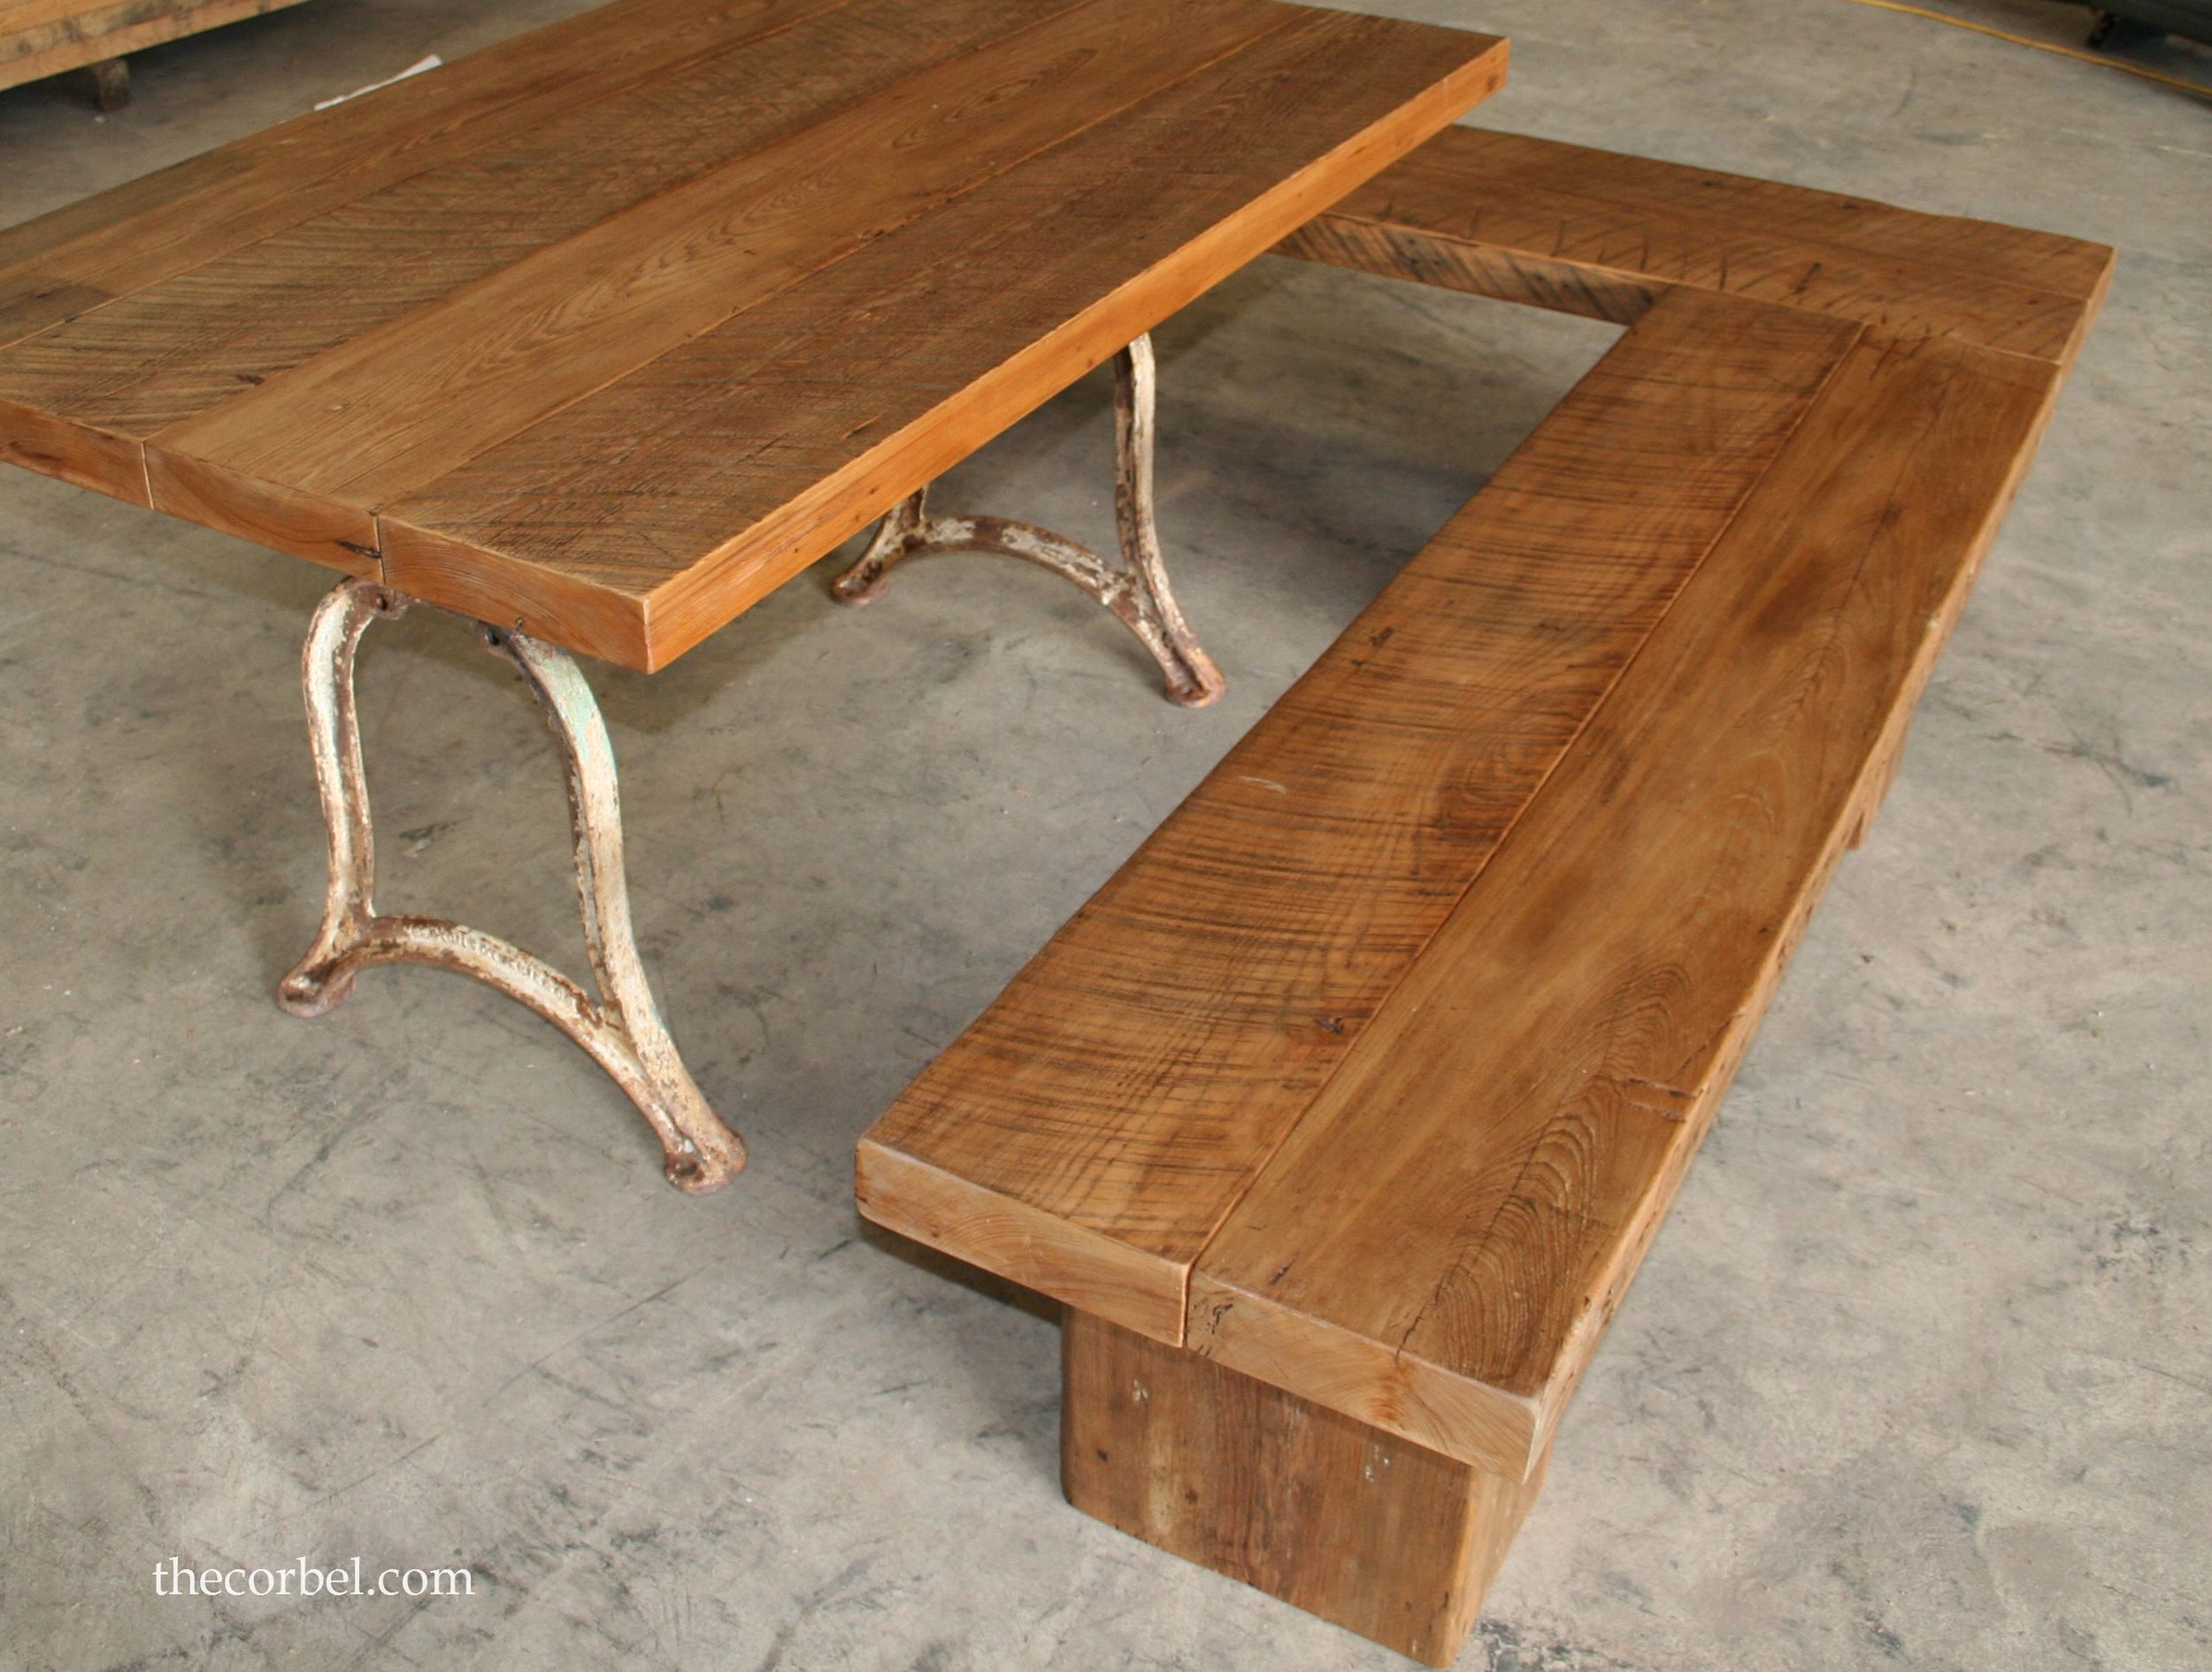 L bench cypress WM.jpg